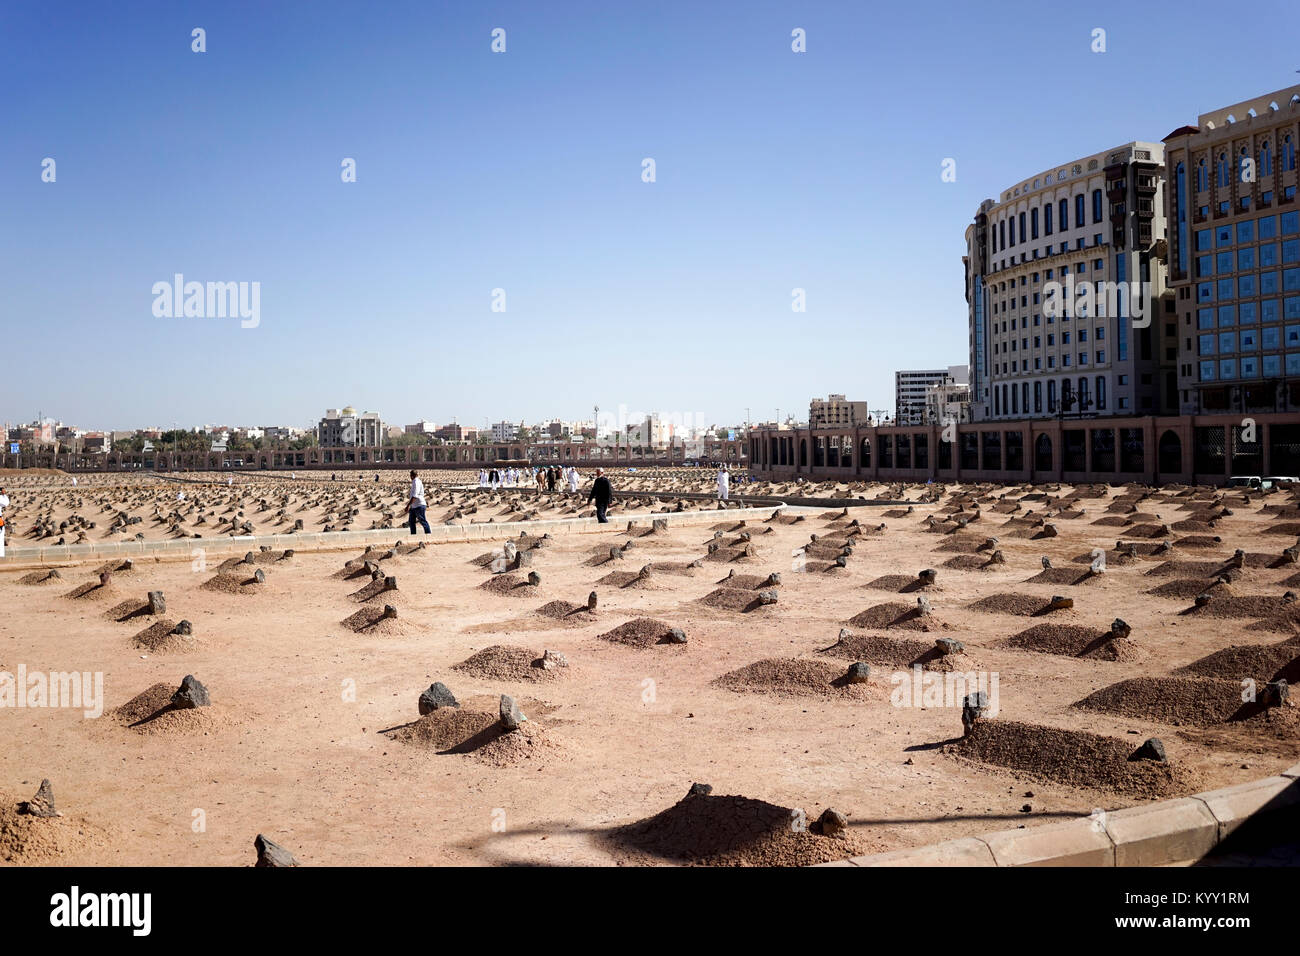 People at Jannat al-Baqi against clear sky in city - Stock Image